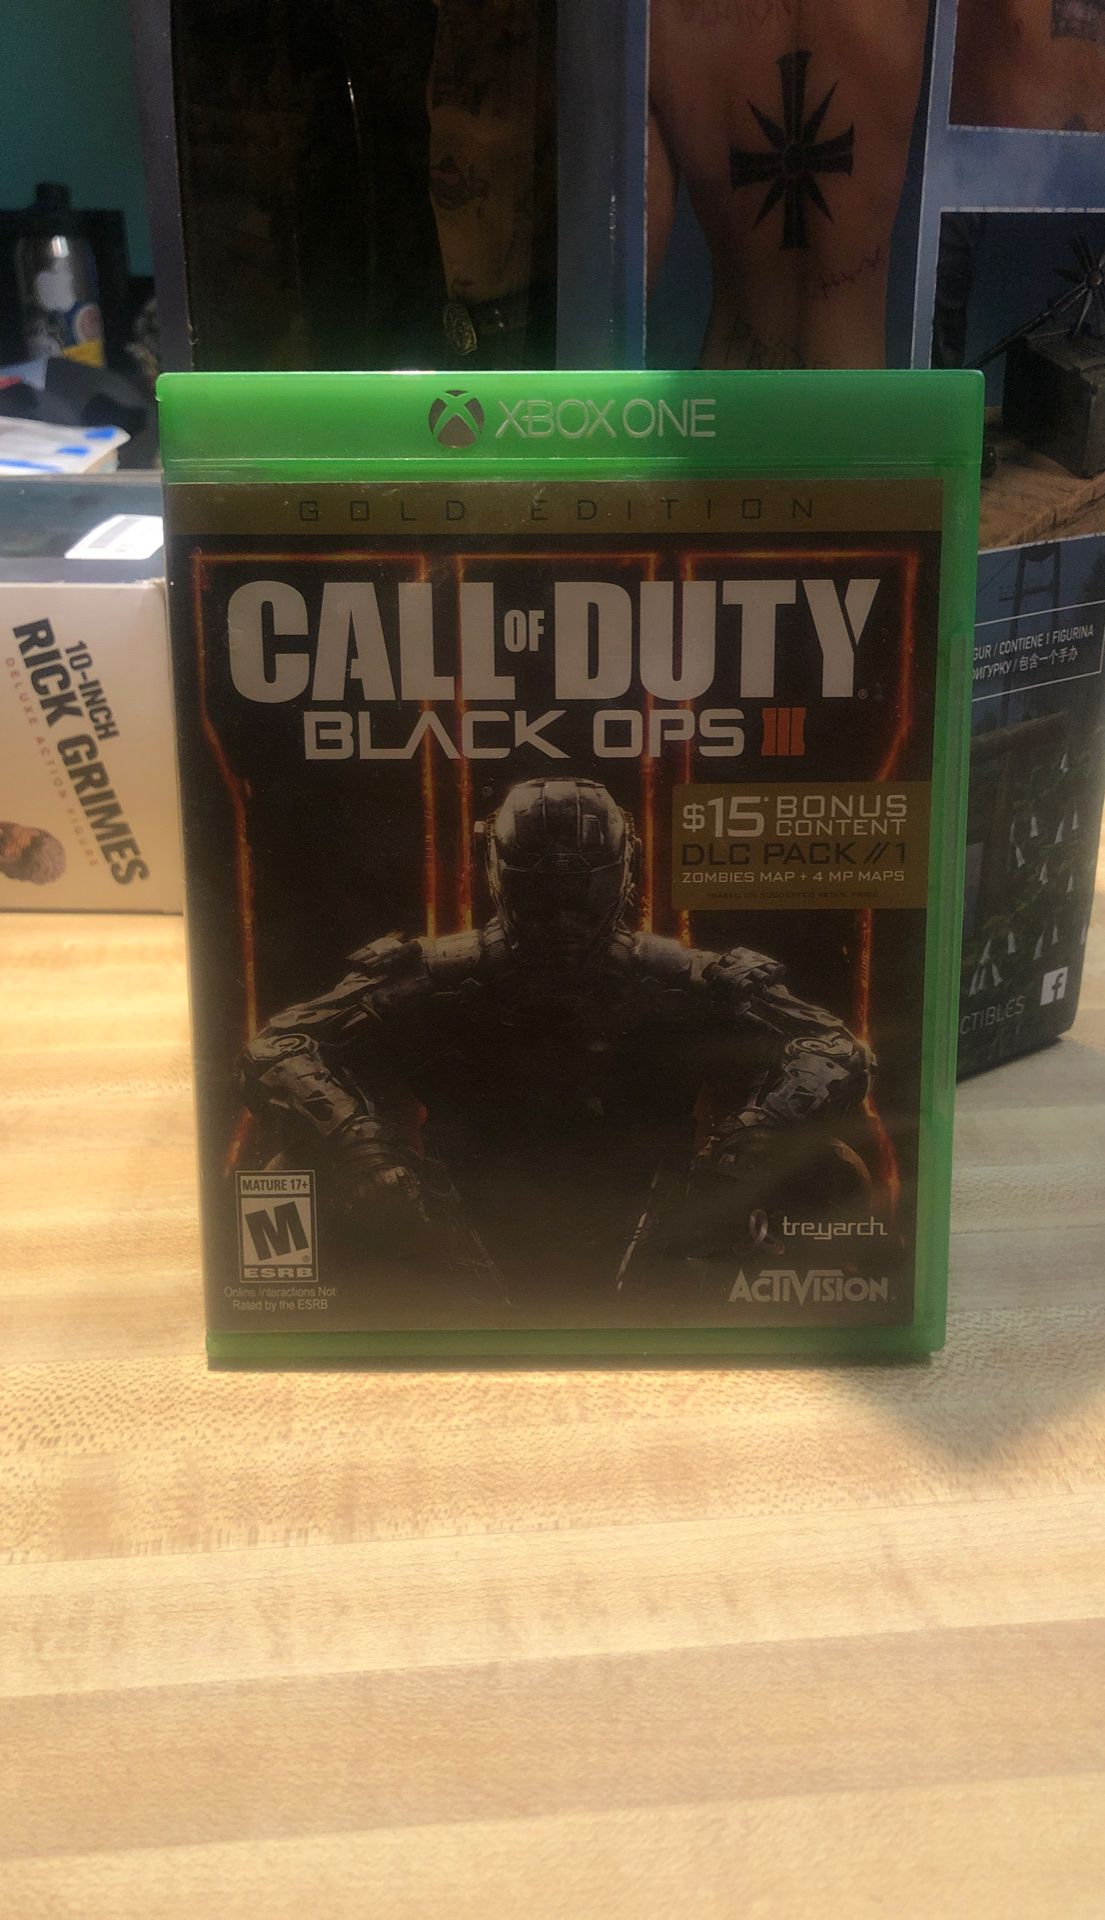 Call of duty black ops 3 for Xbox 1